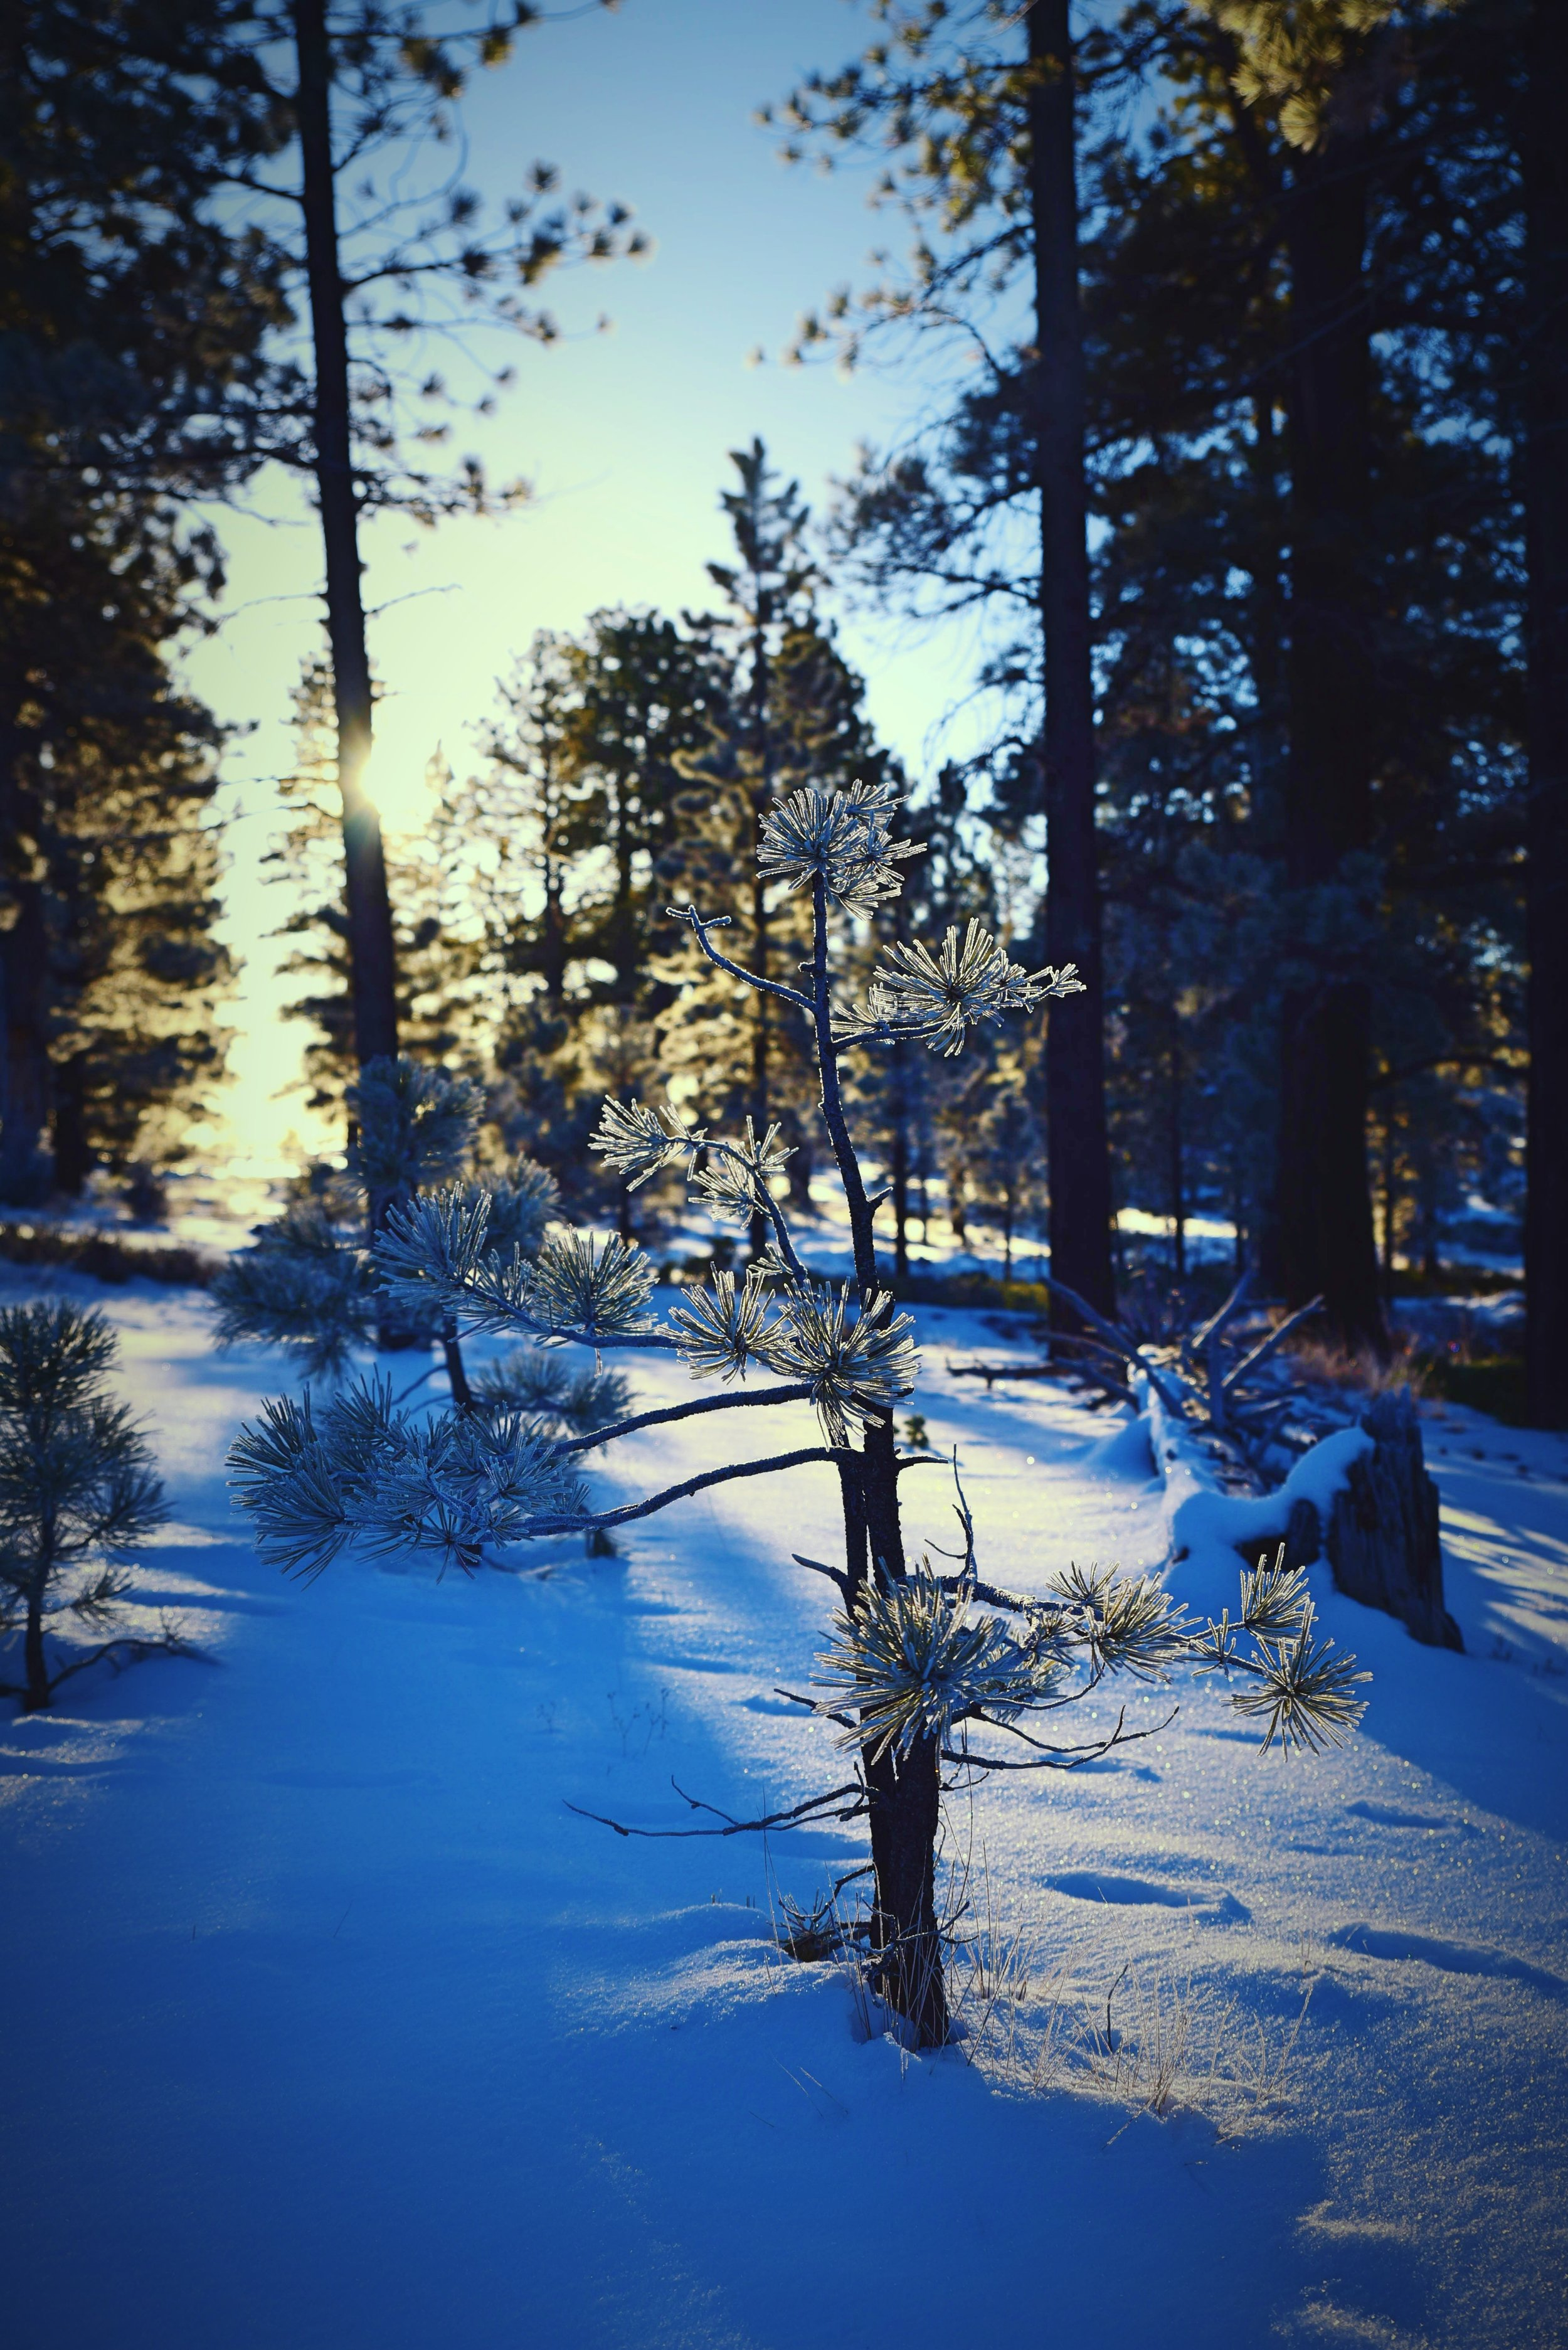 Early in the morning, the trees on the canyon rim were covered with a beautiful hoar frost.